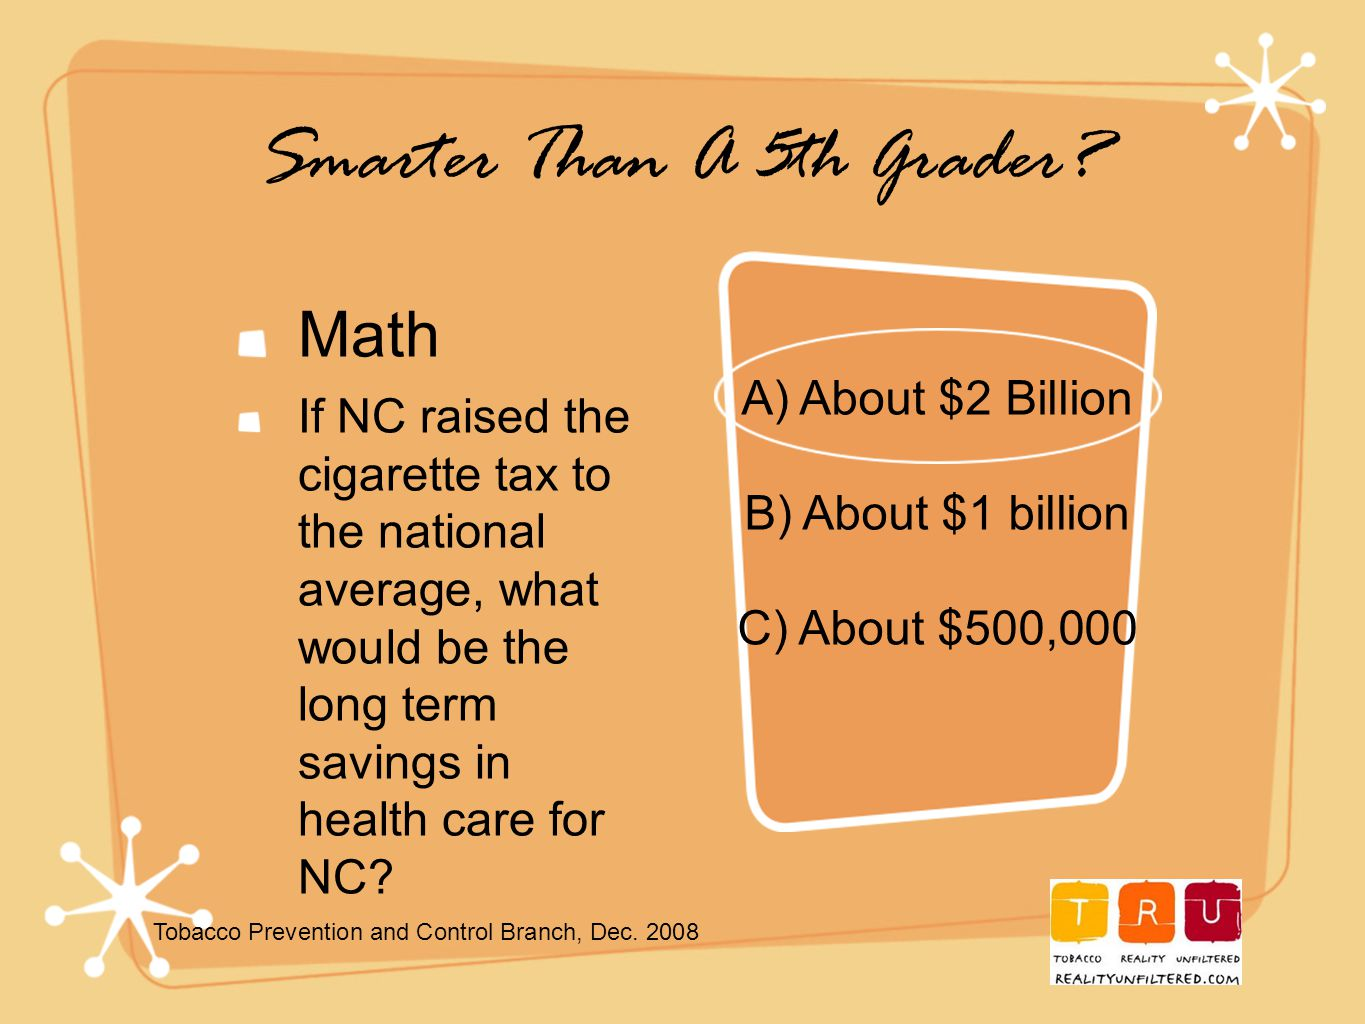 Smarter Than A 5th Grader? Math If NC raised the cigarette tax to the national average, what would be the long term savings in health care for NC? A)